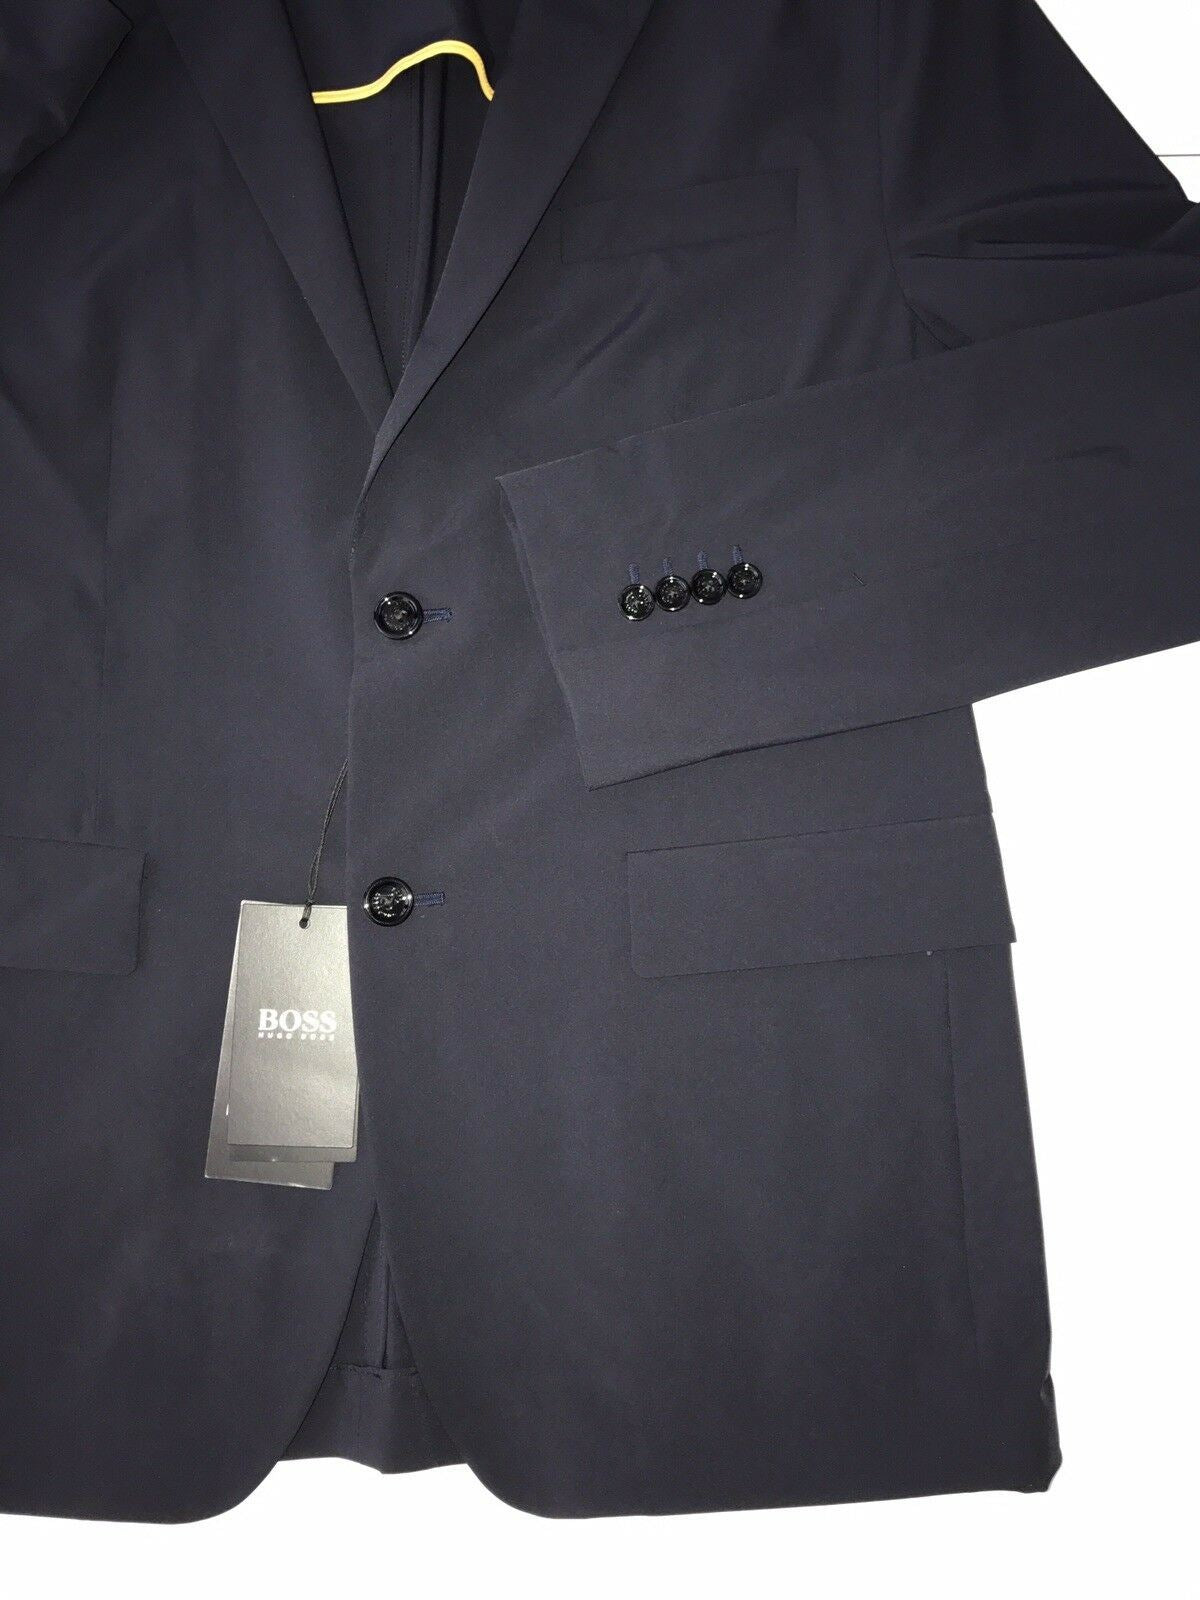 NWT $745 Boss Hugo Boss Neilton Stretch Water Repellent Men's Sport Coat 38R US